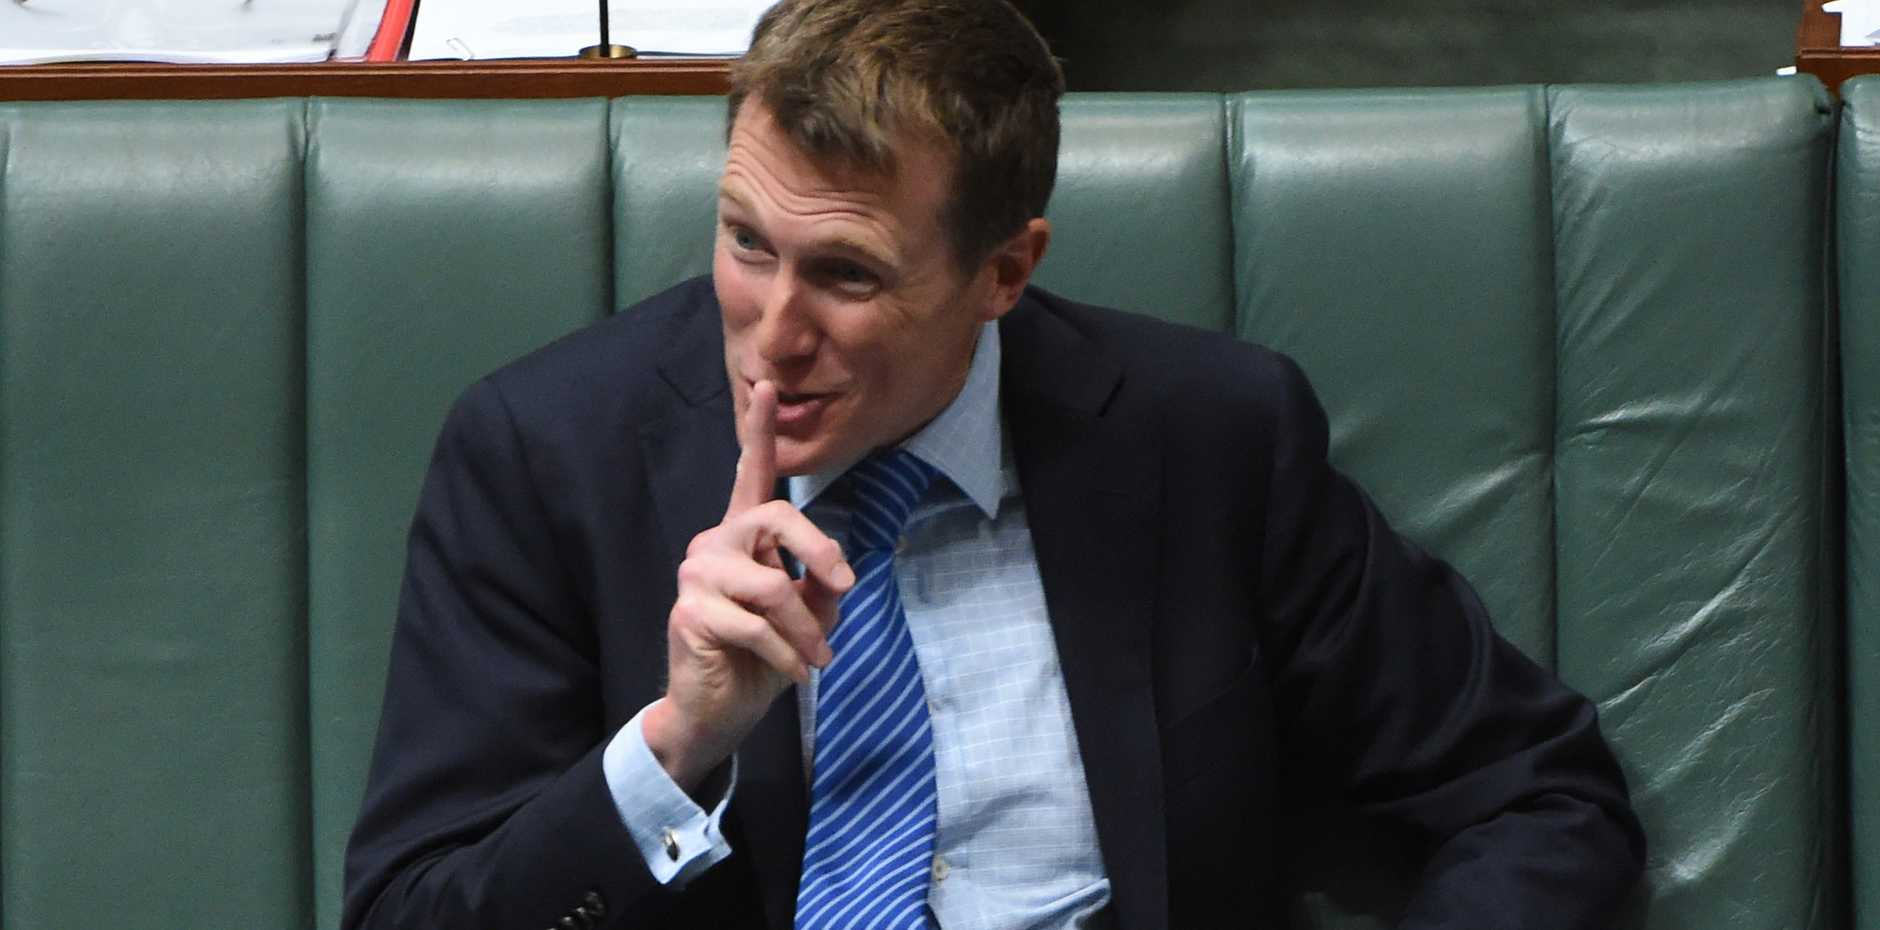 Minister for Social Services Christian Porter during Question Time in the House of Representatives at Parliament House in Canberra, Tuesday, Nov. 29, 2016.